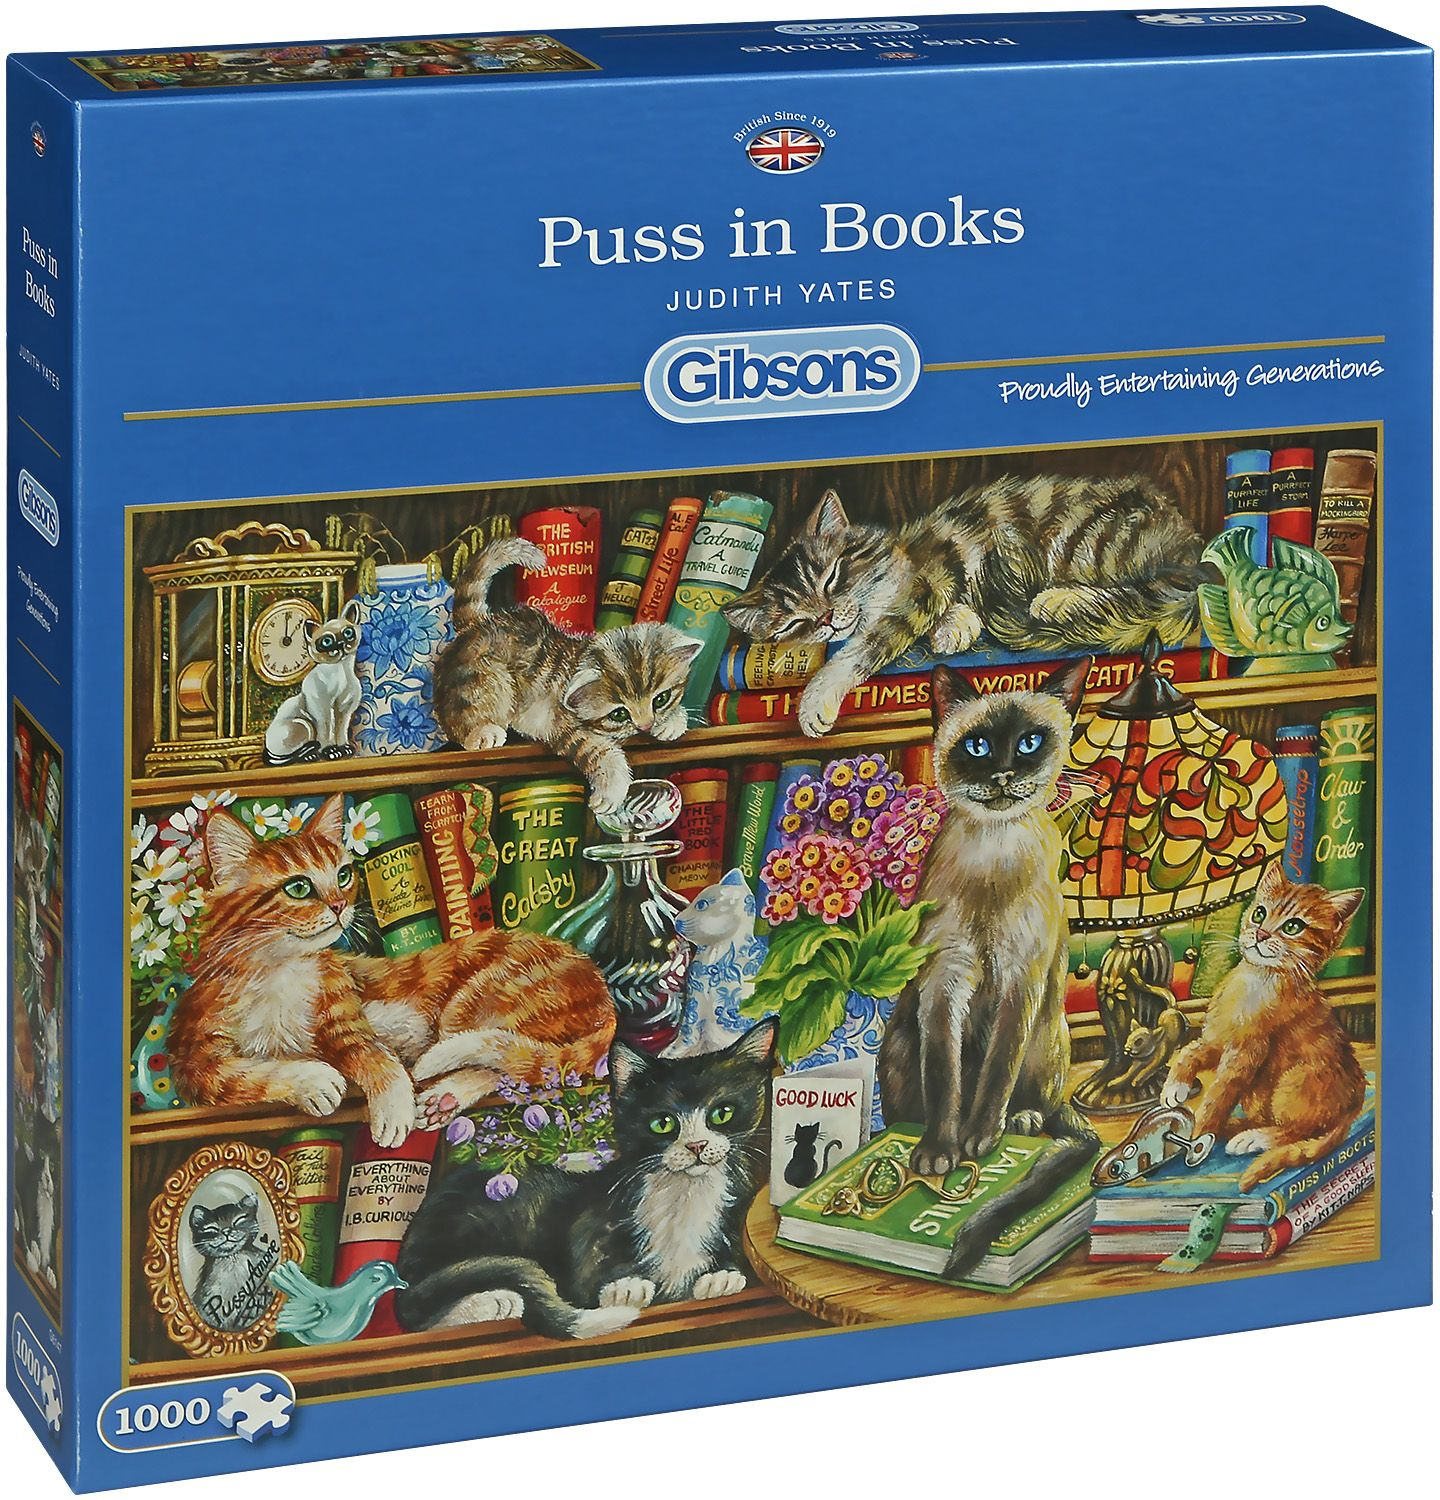 PUSS IN BOOKS 1000PC PUZZLE